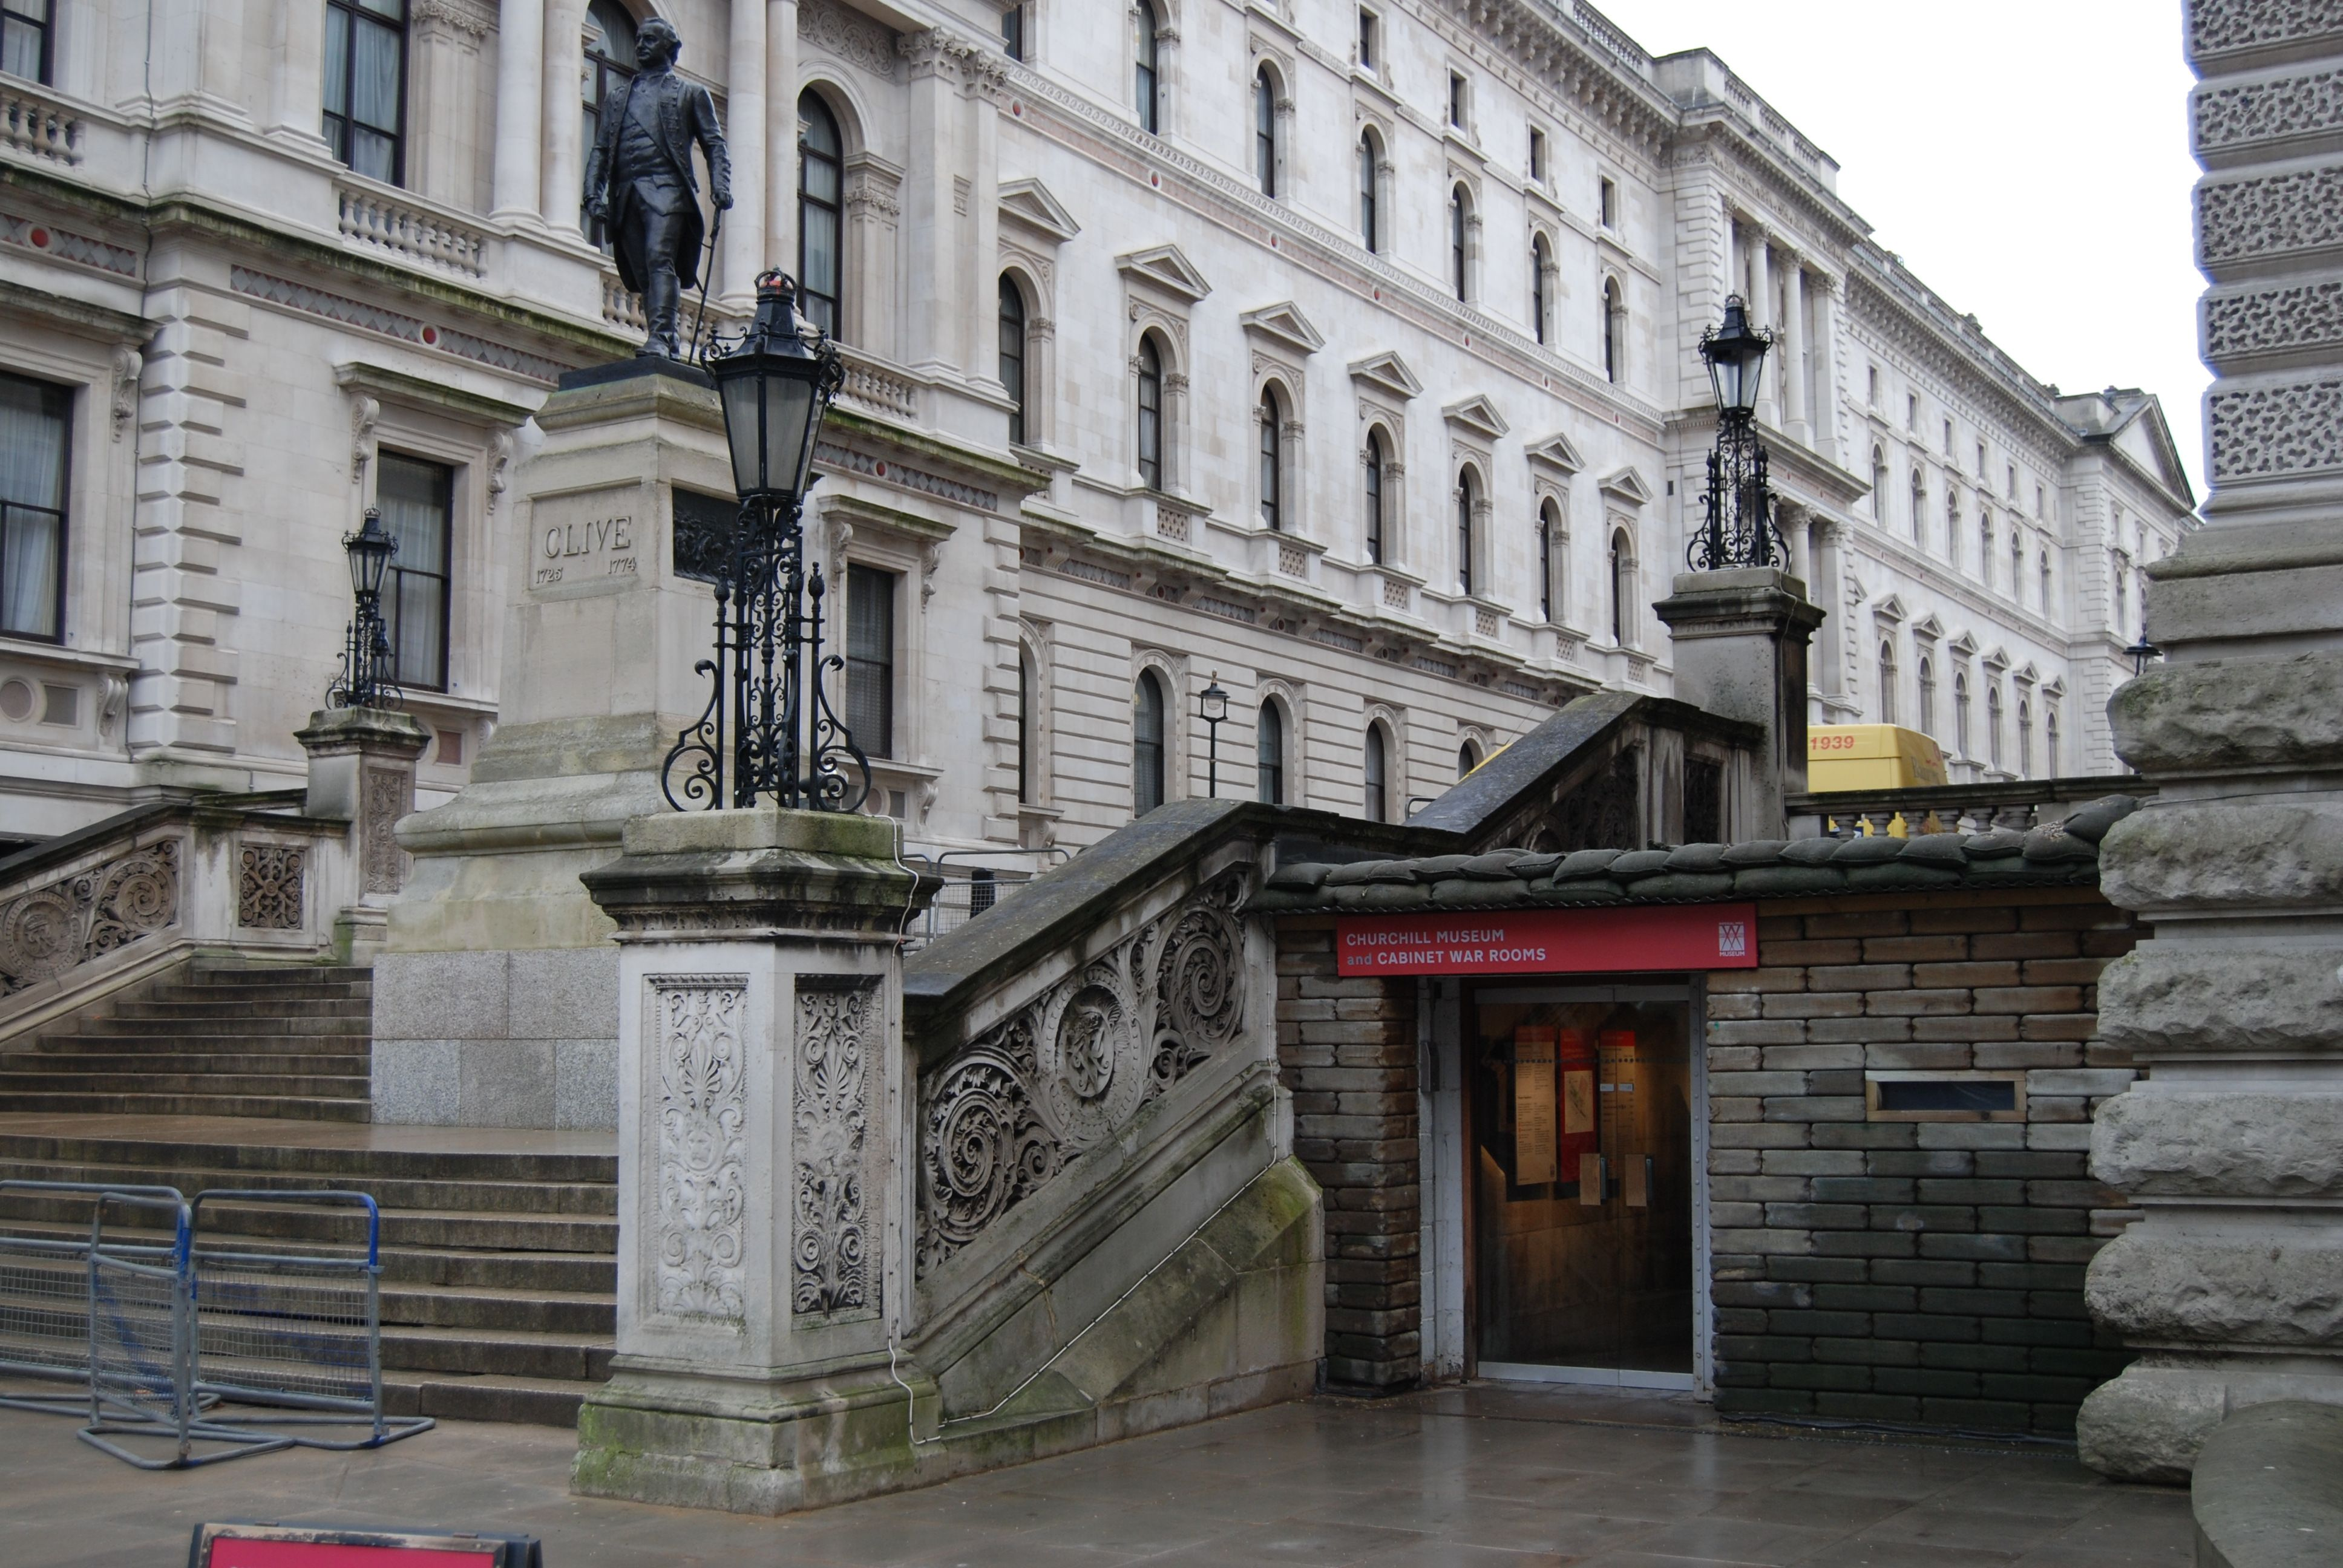 Fresh Churchill Museum and Cabinet War Rooms